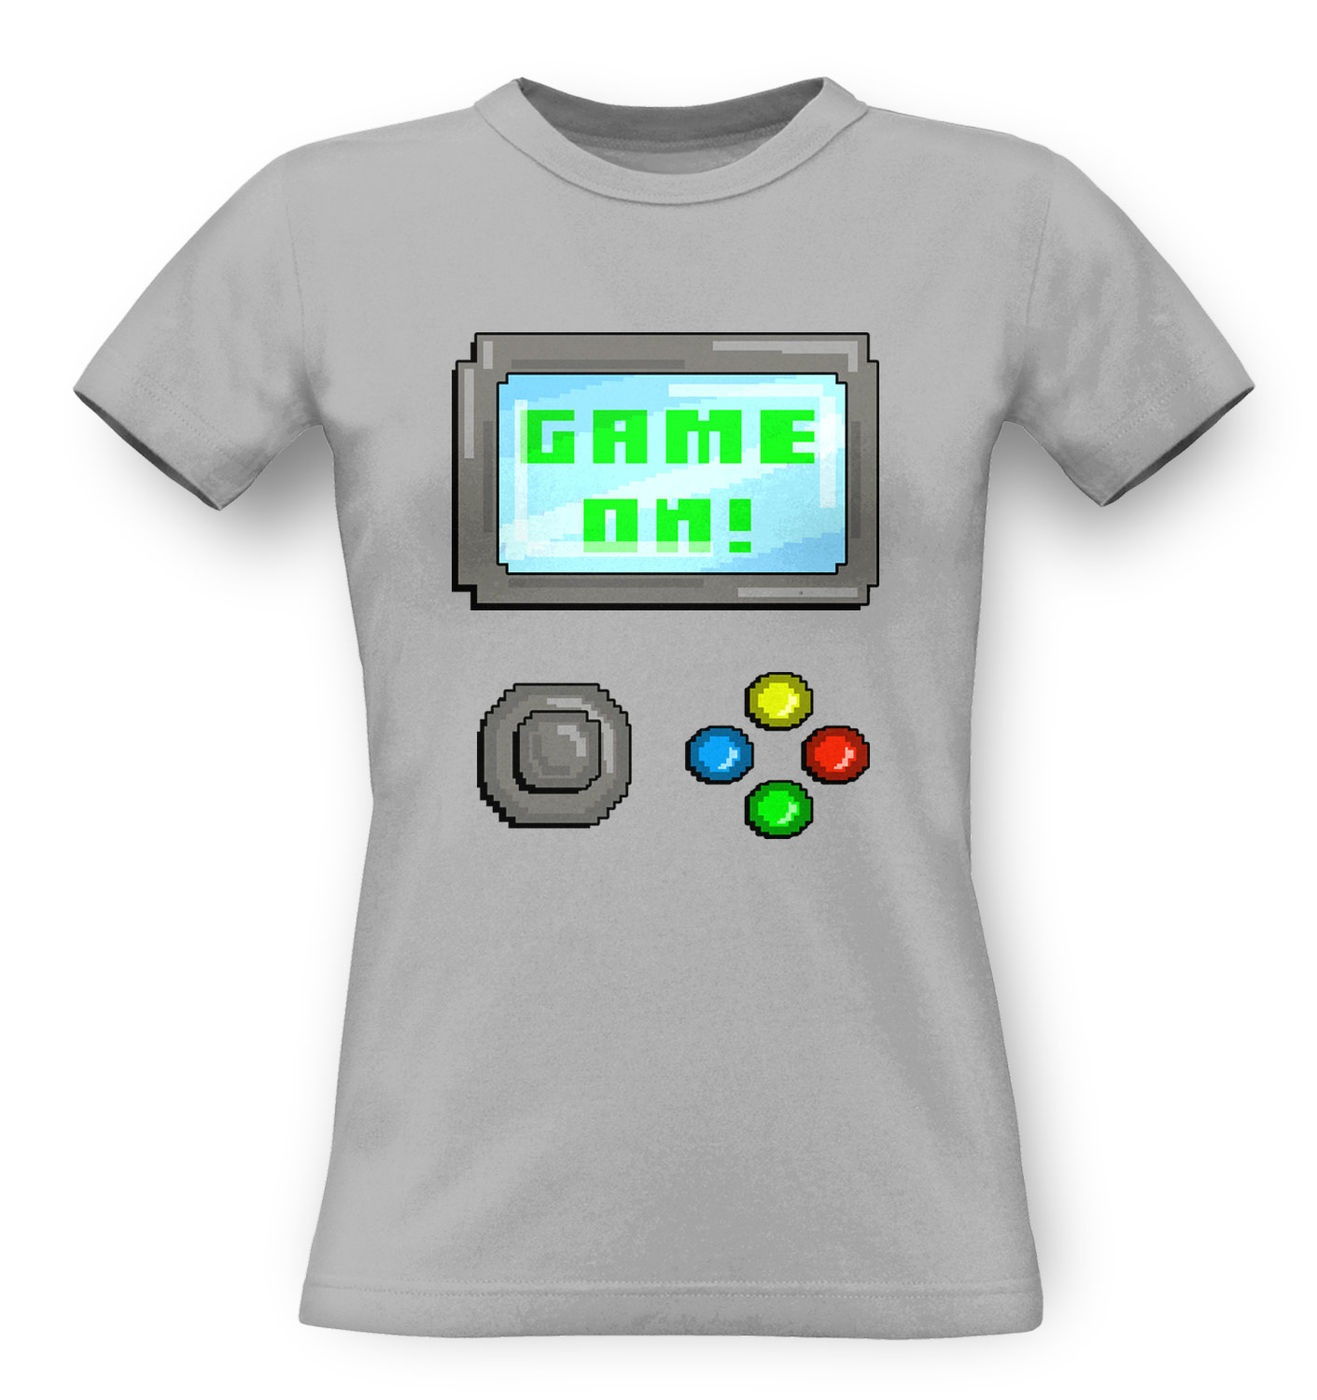 Game On classic women's t-shirt by Something Geeky